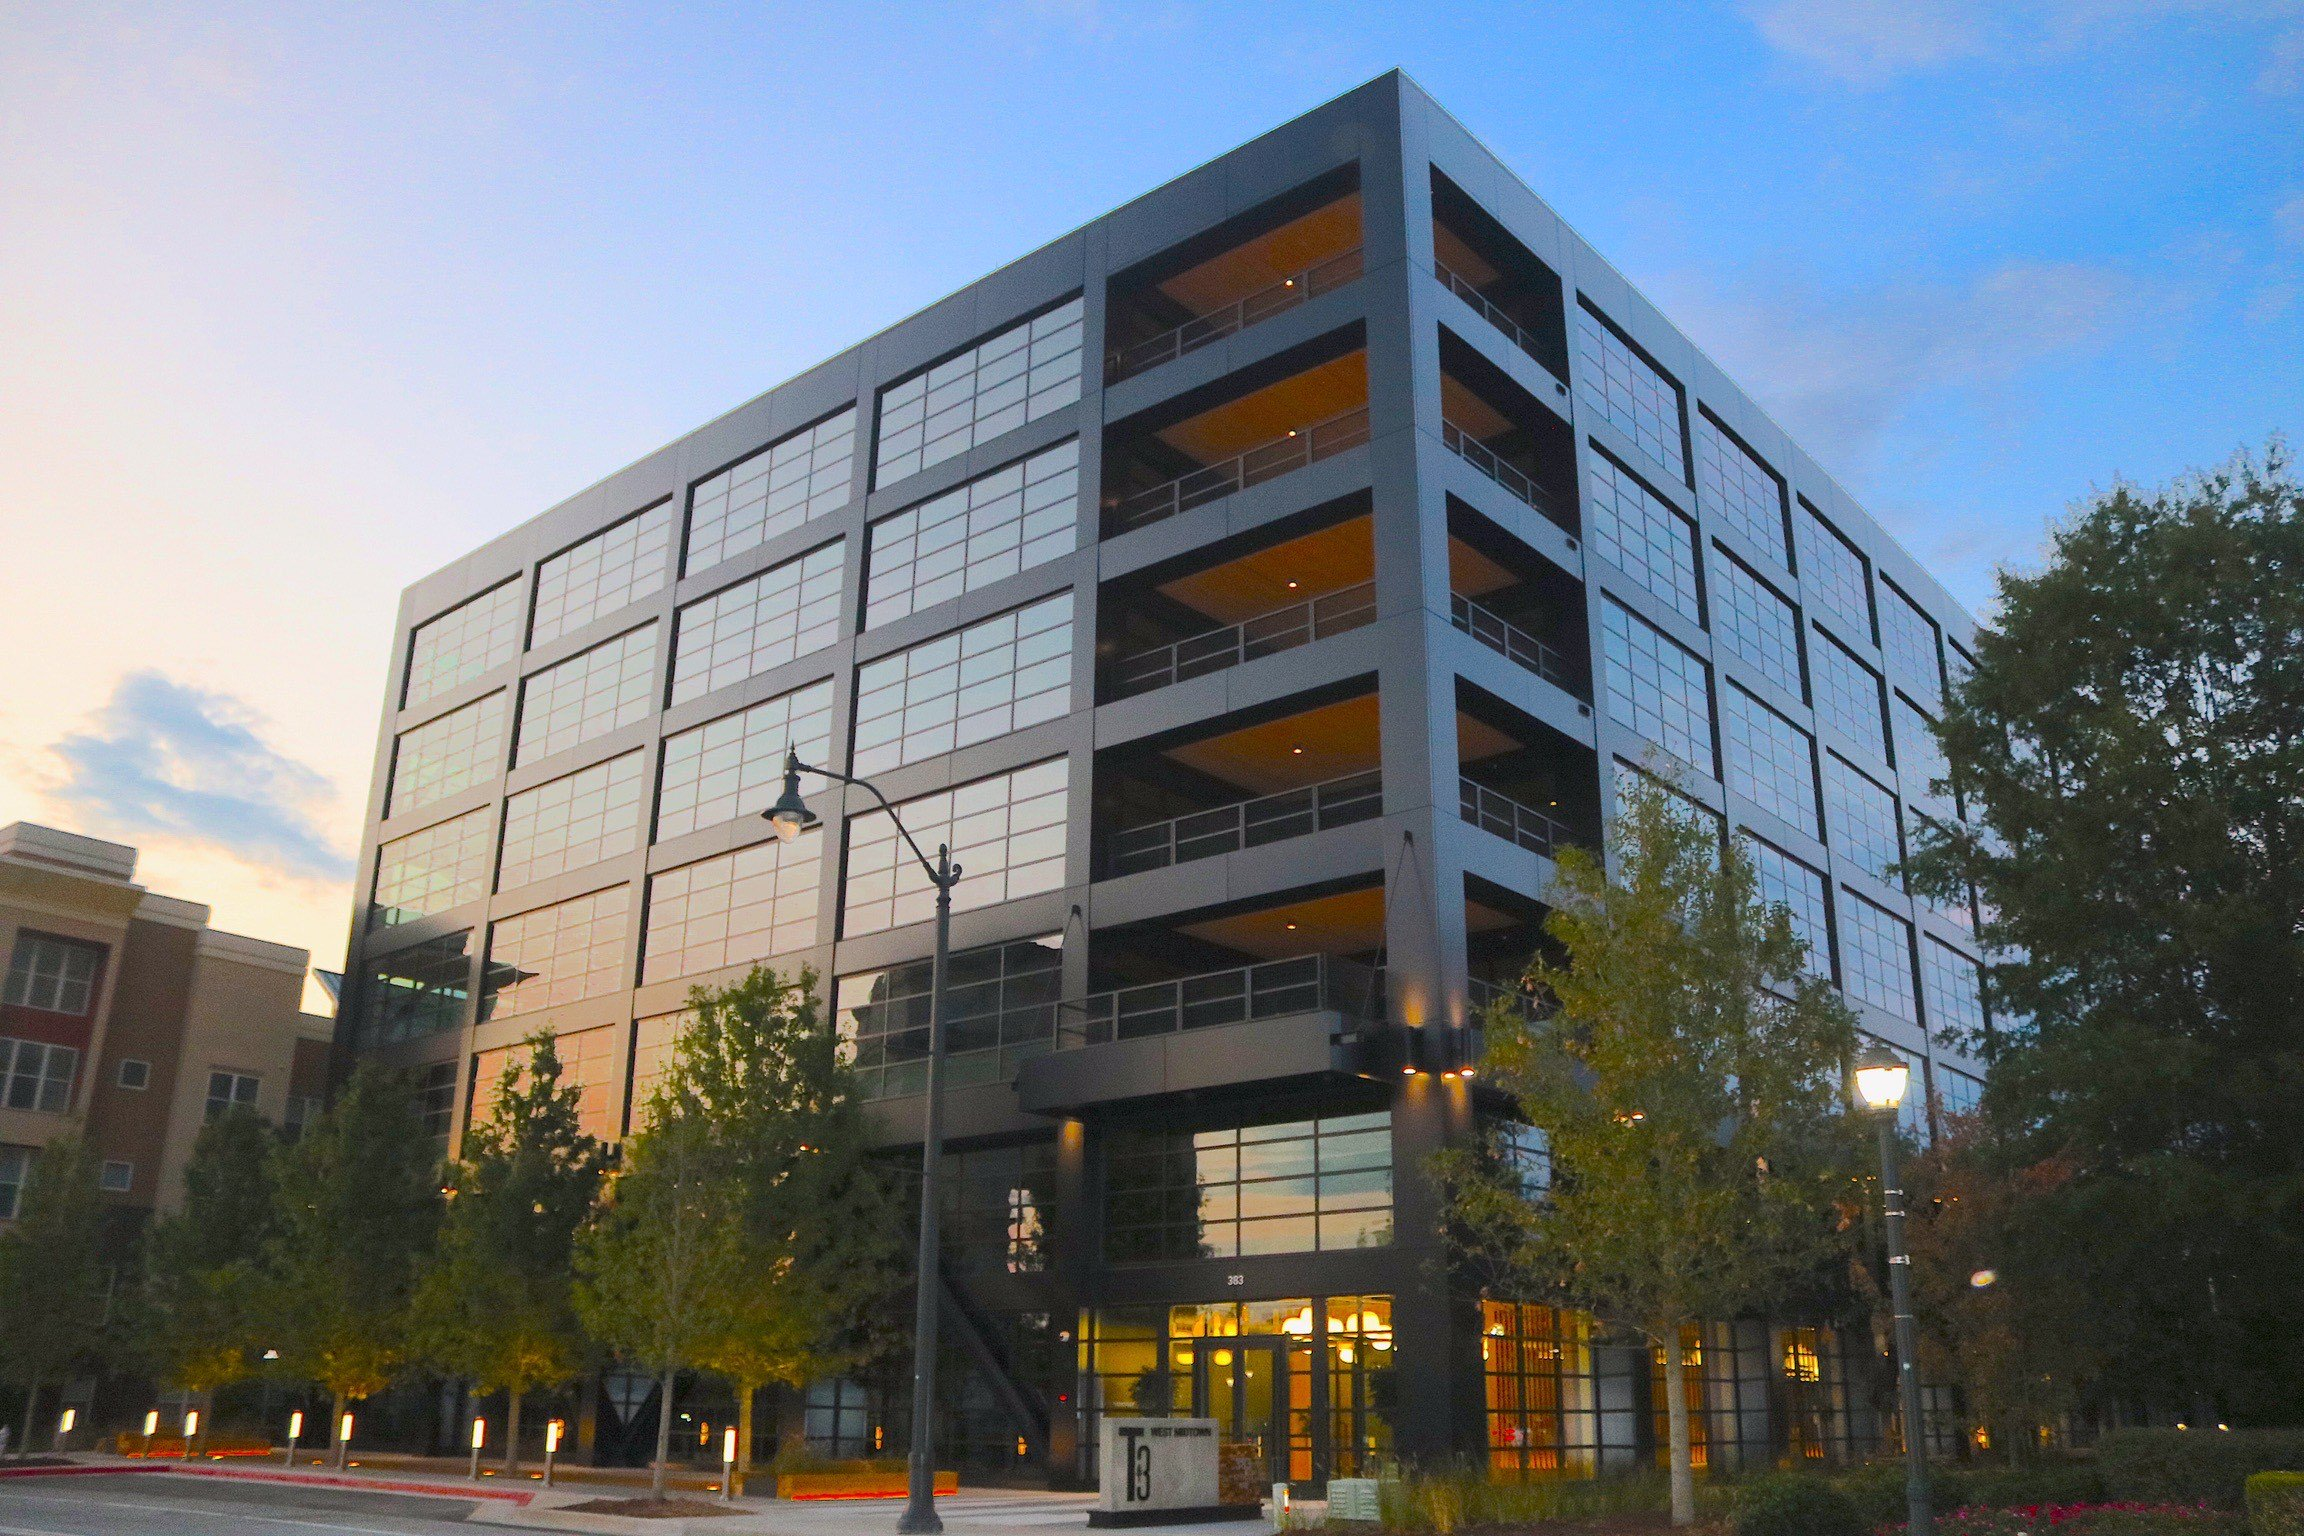 A ground-level view of the new office building, which stands seven stories and is wrapped in black metal and large windows.